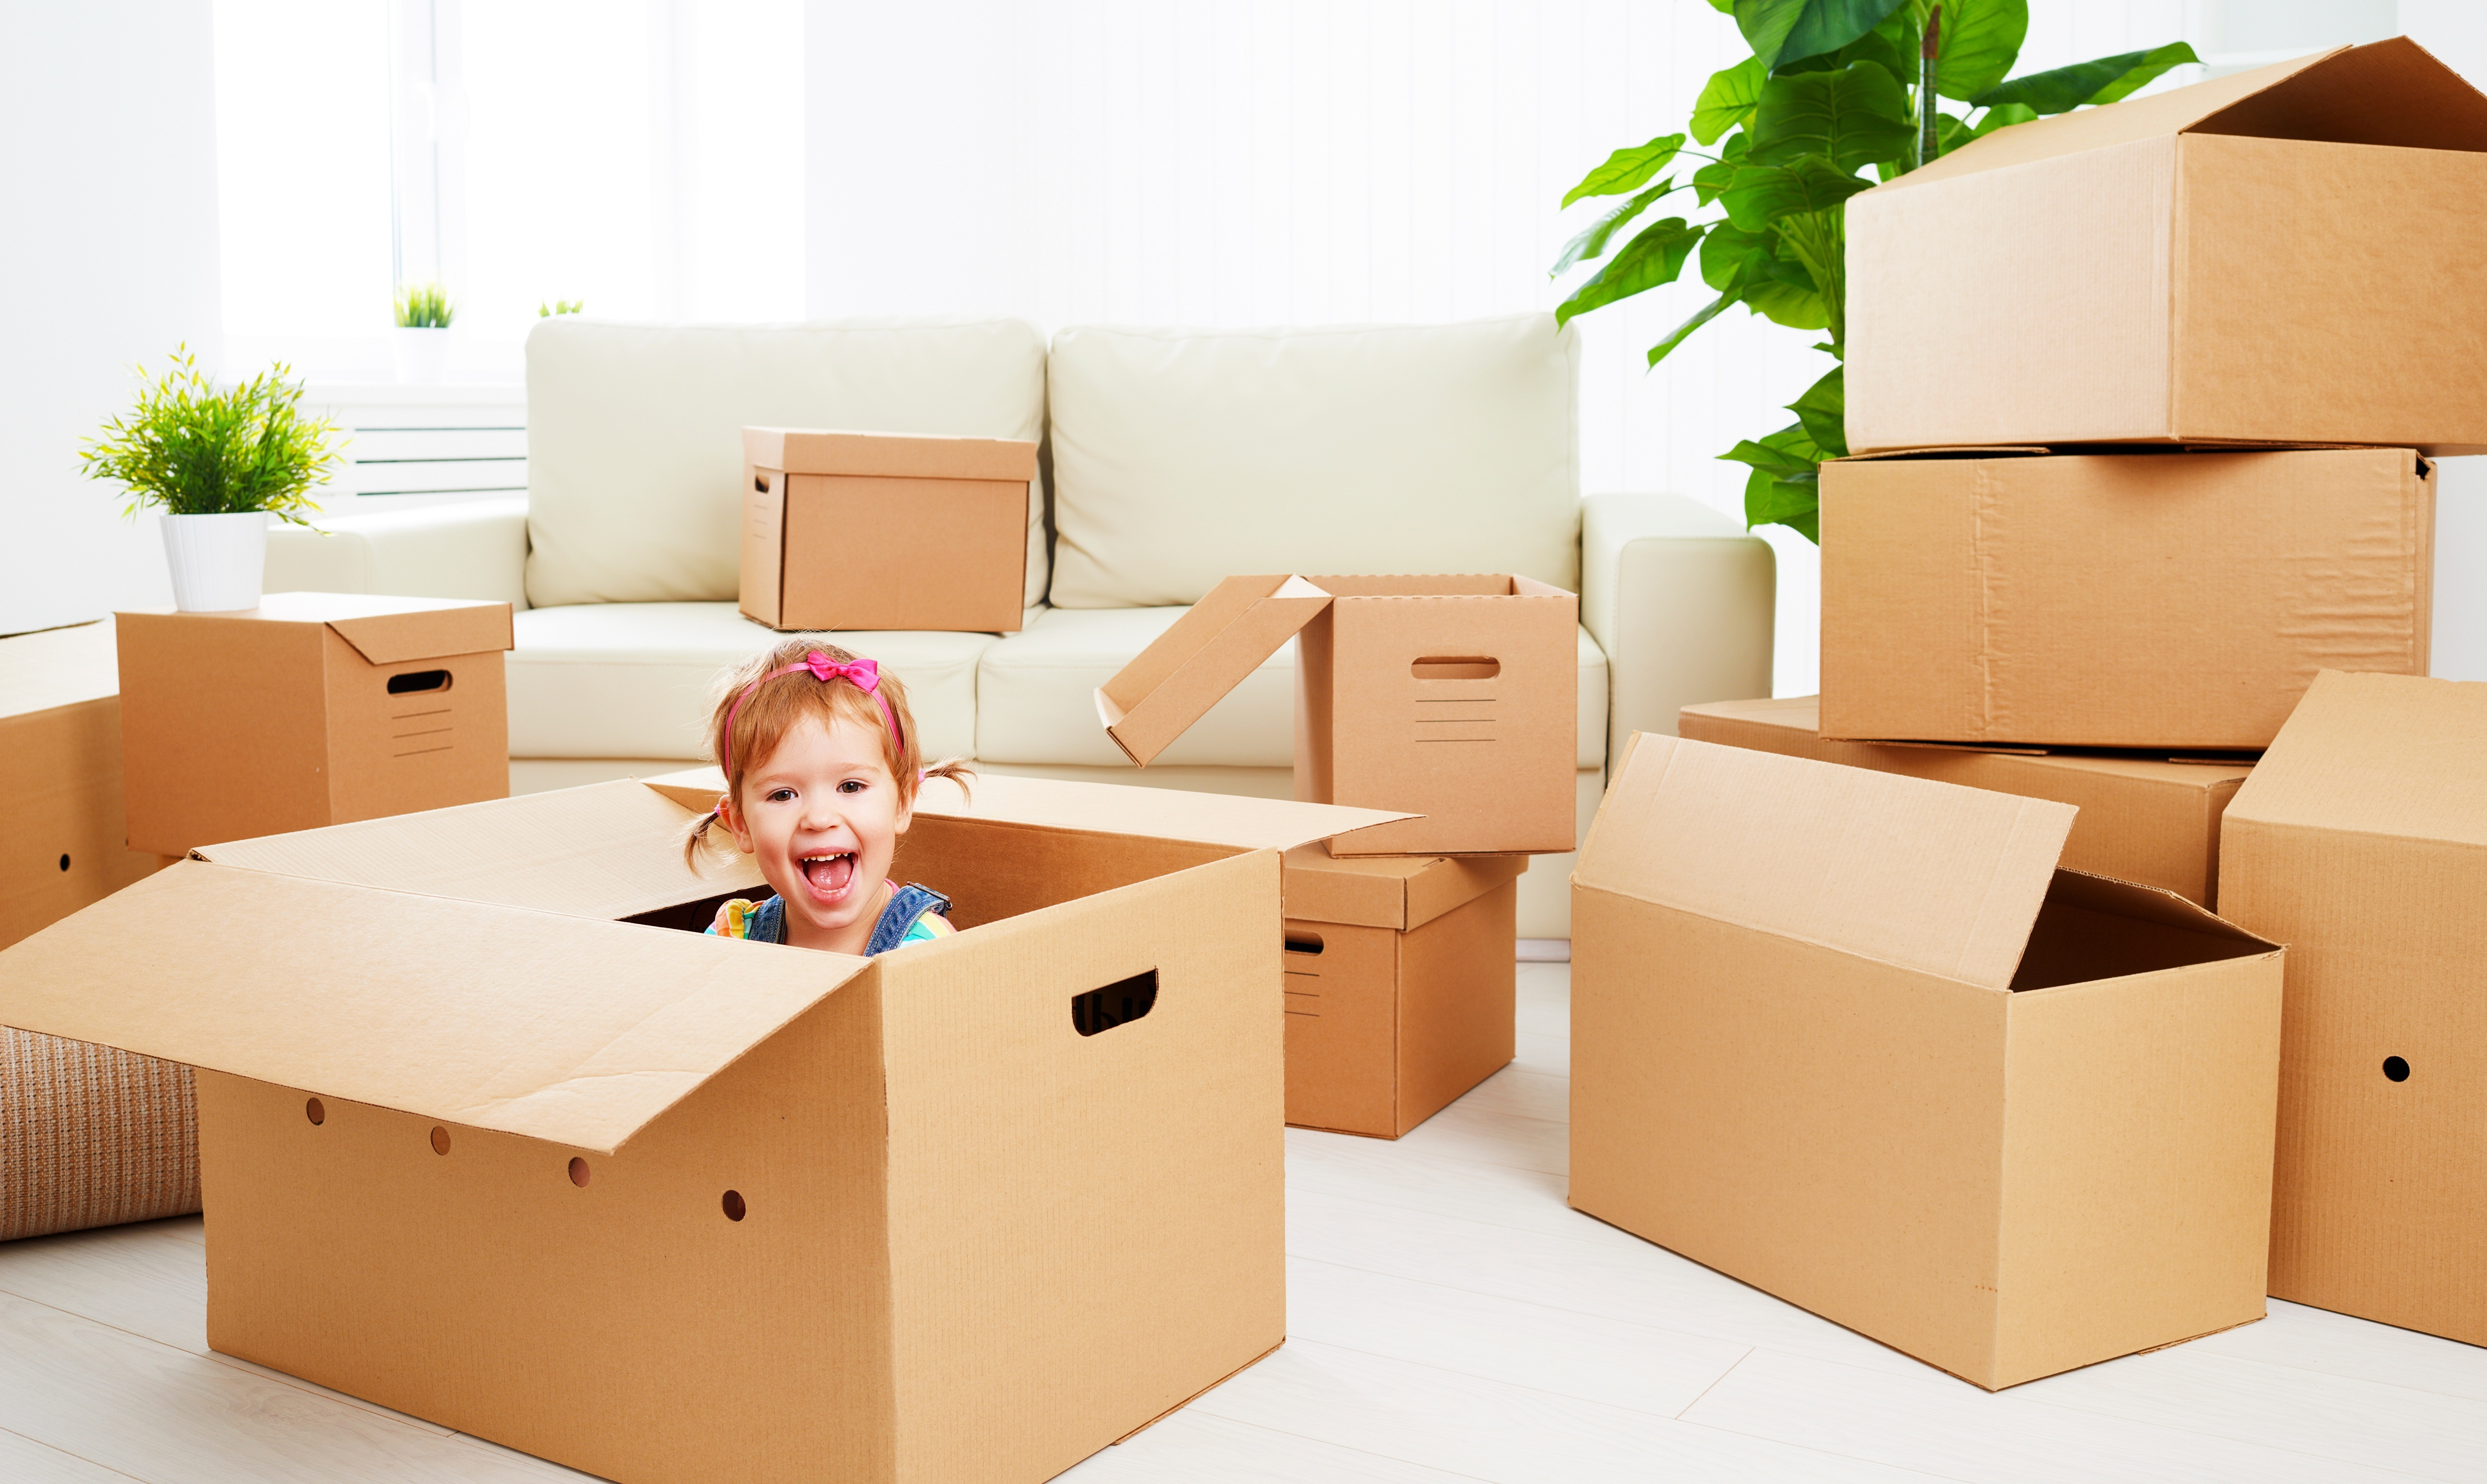 Your moving house checklist